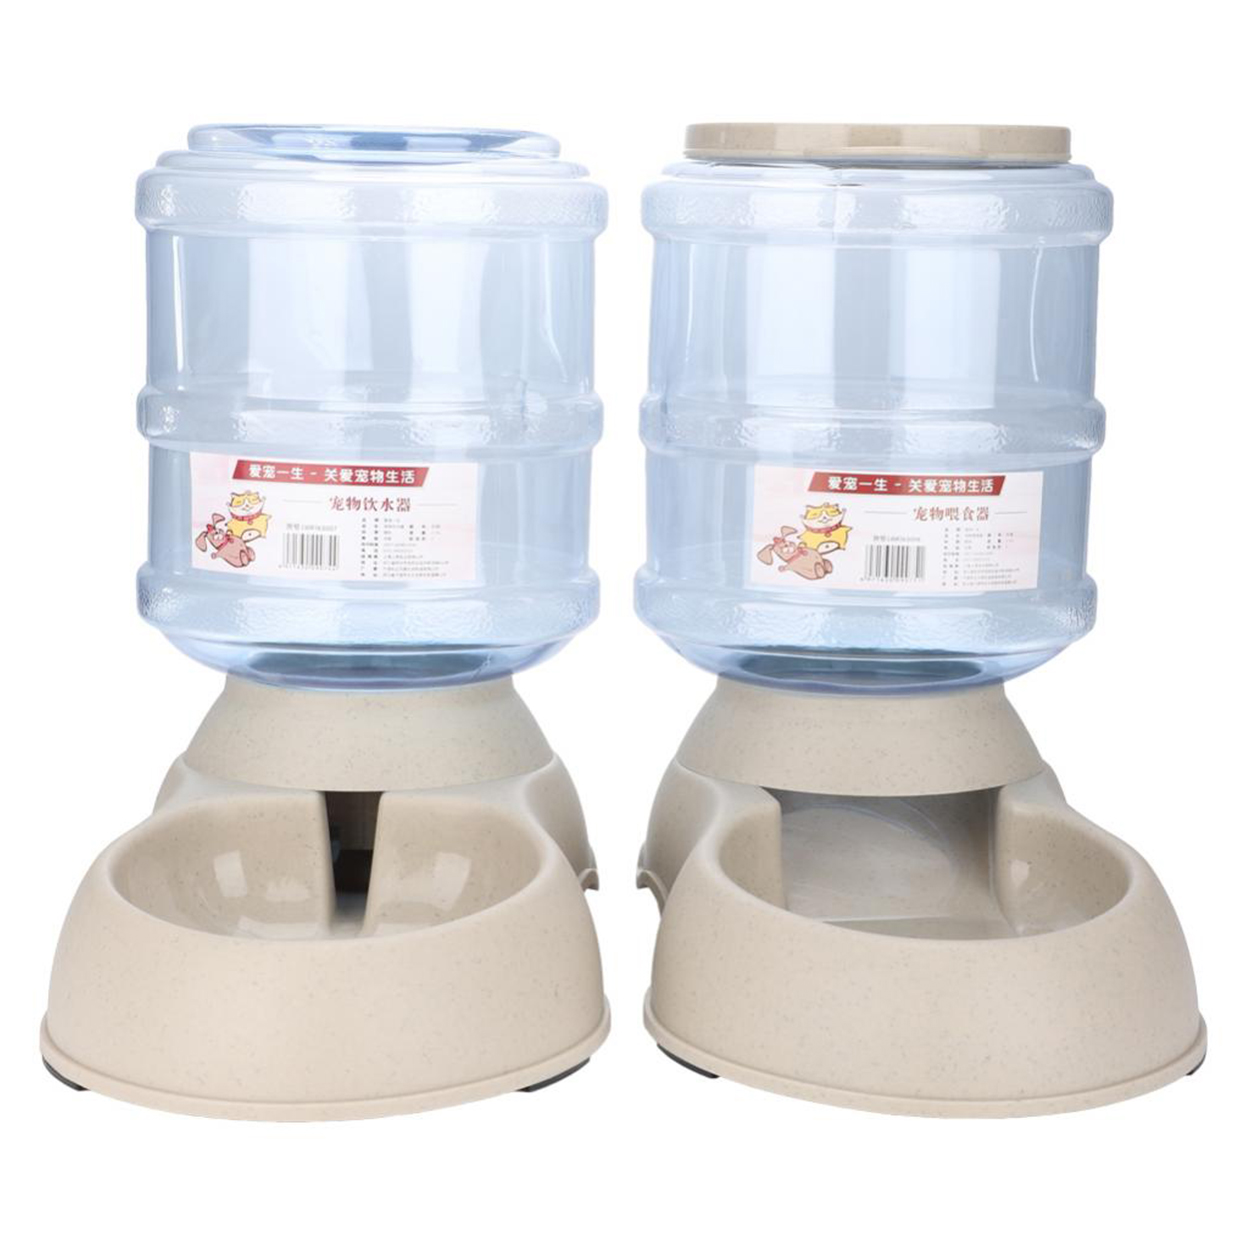 tbest automatic pet feeder